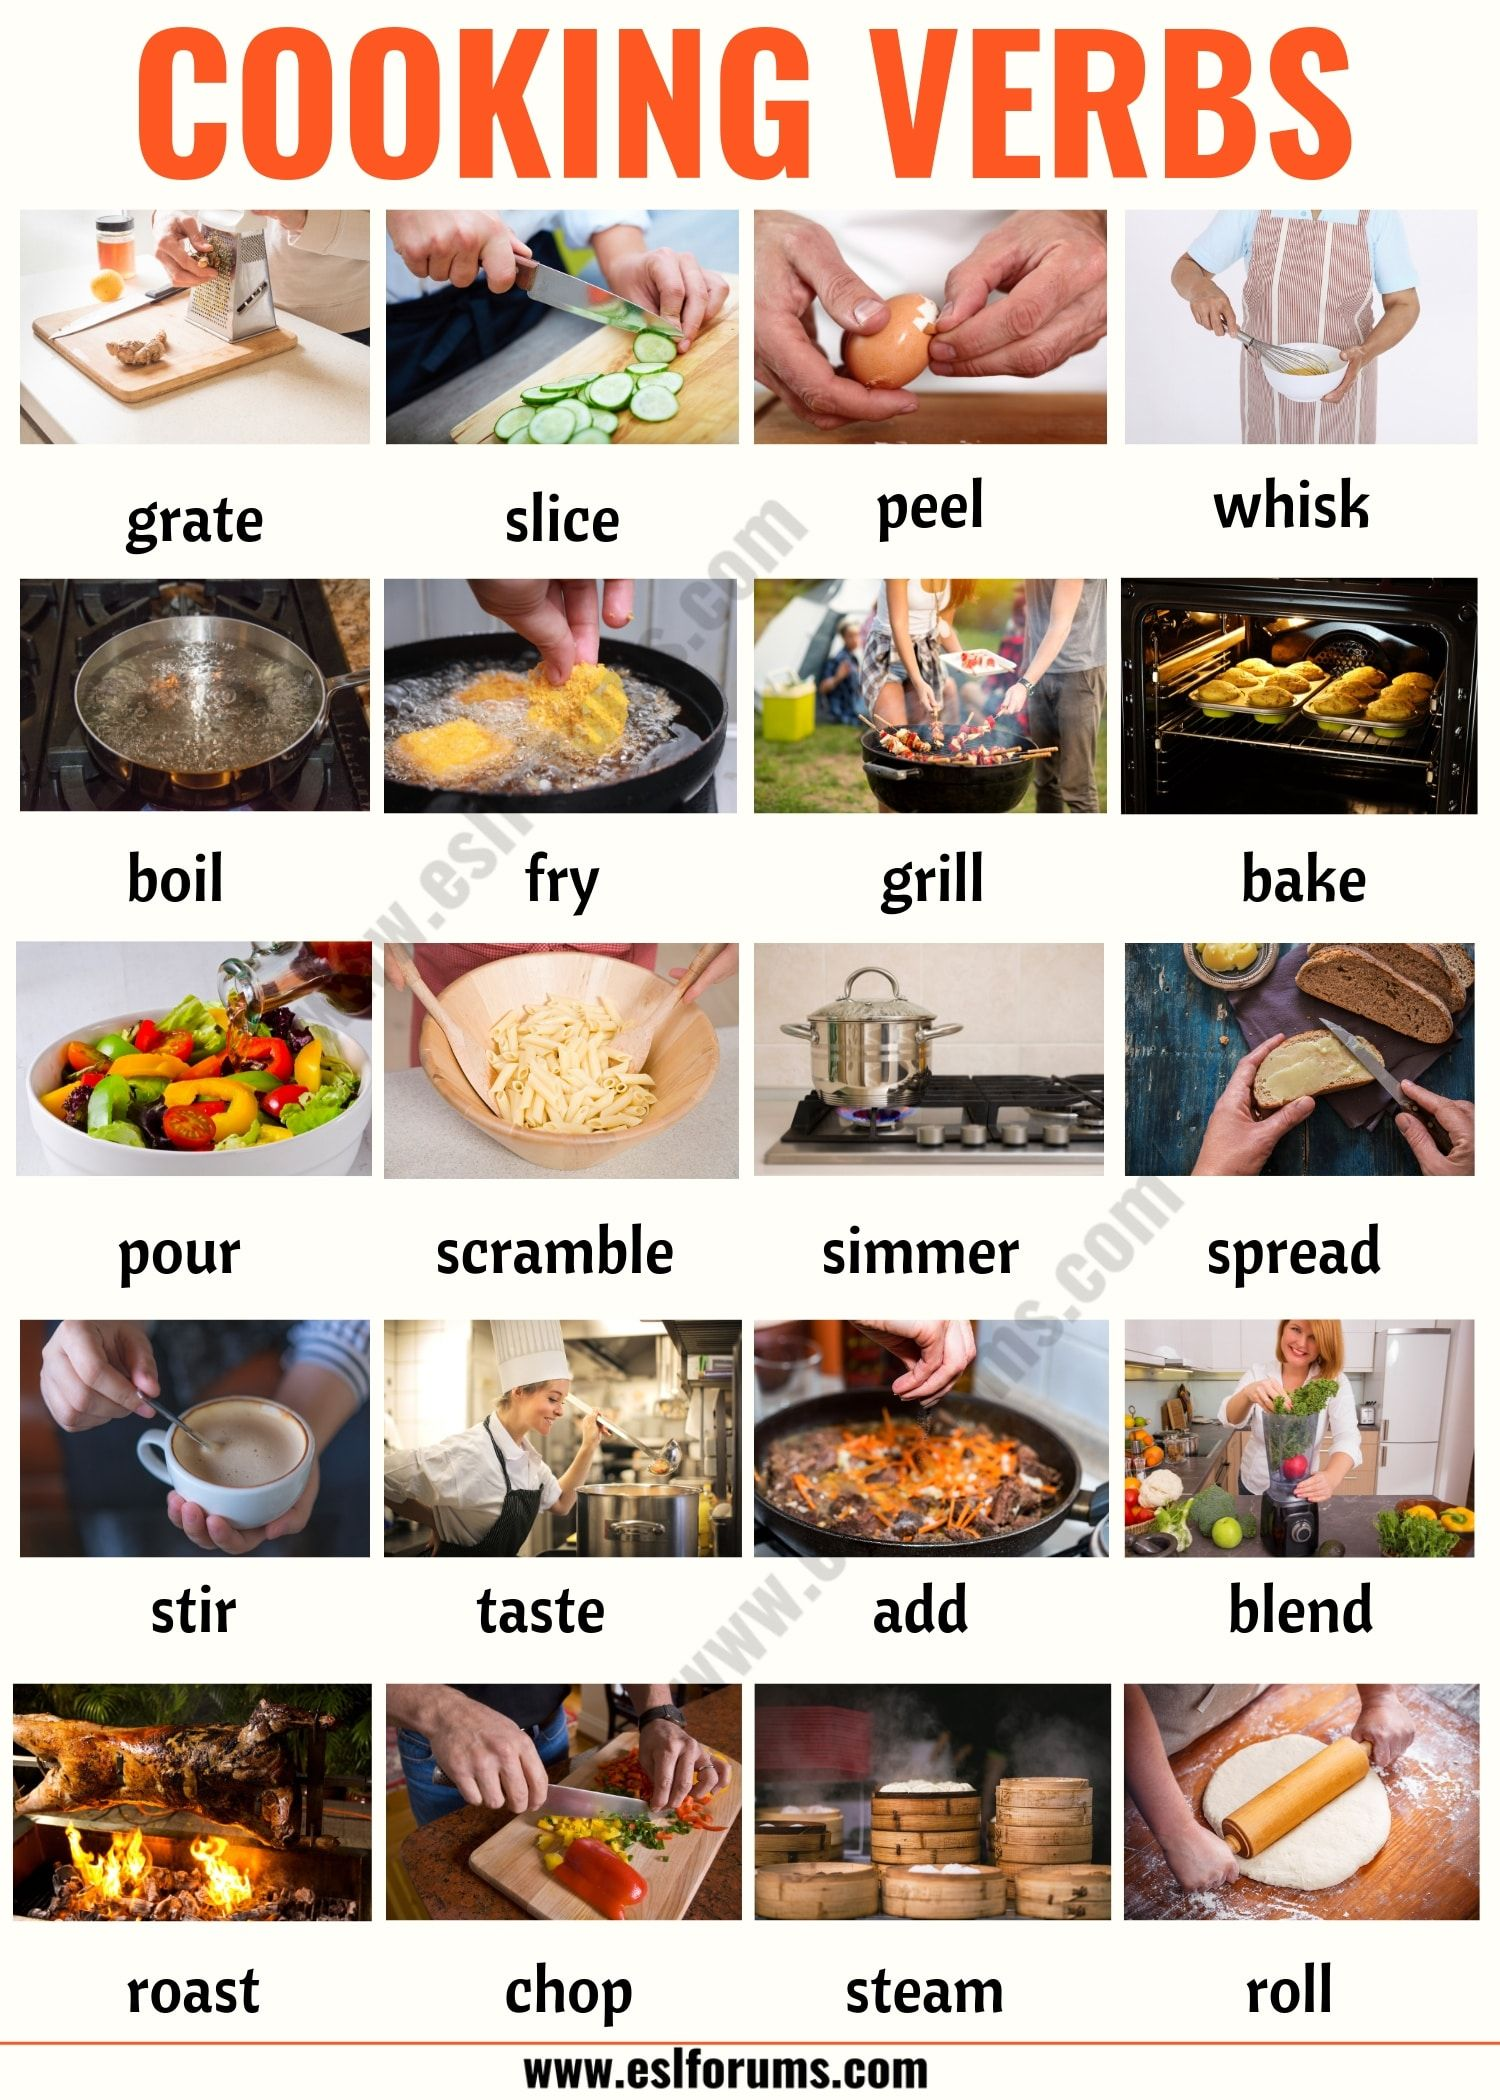 Cooking Terms List Of 20 Useful Cooking Verbs In English